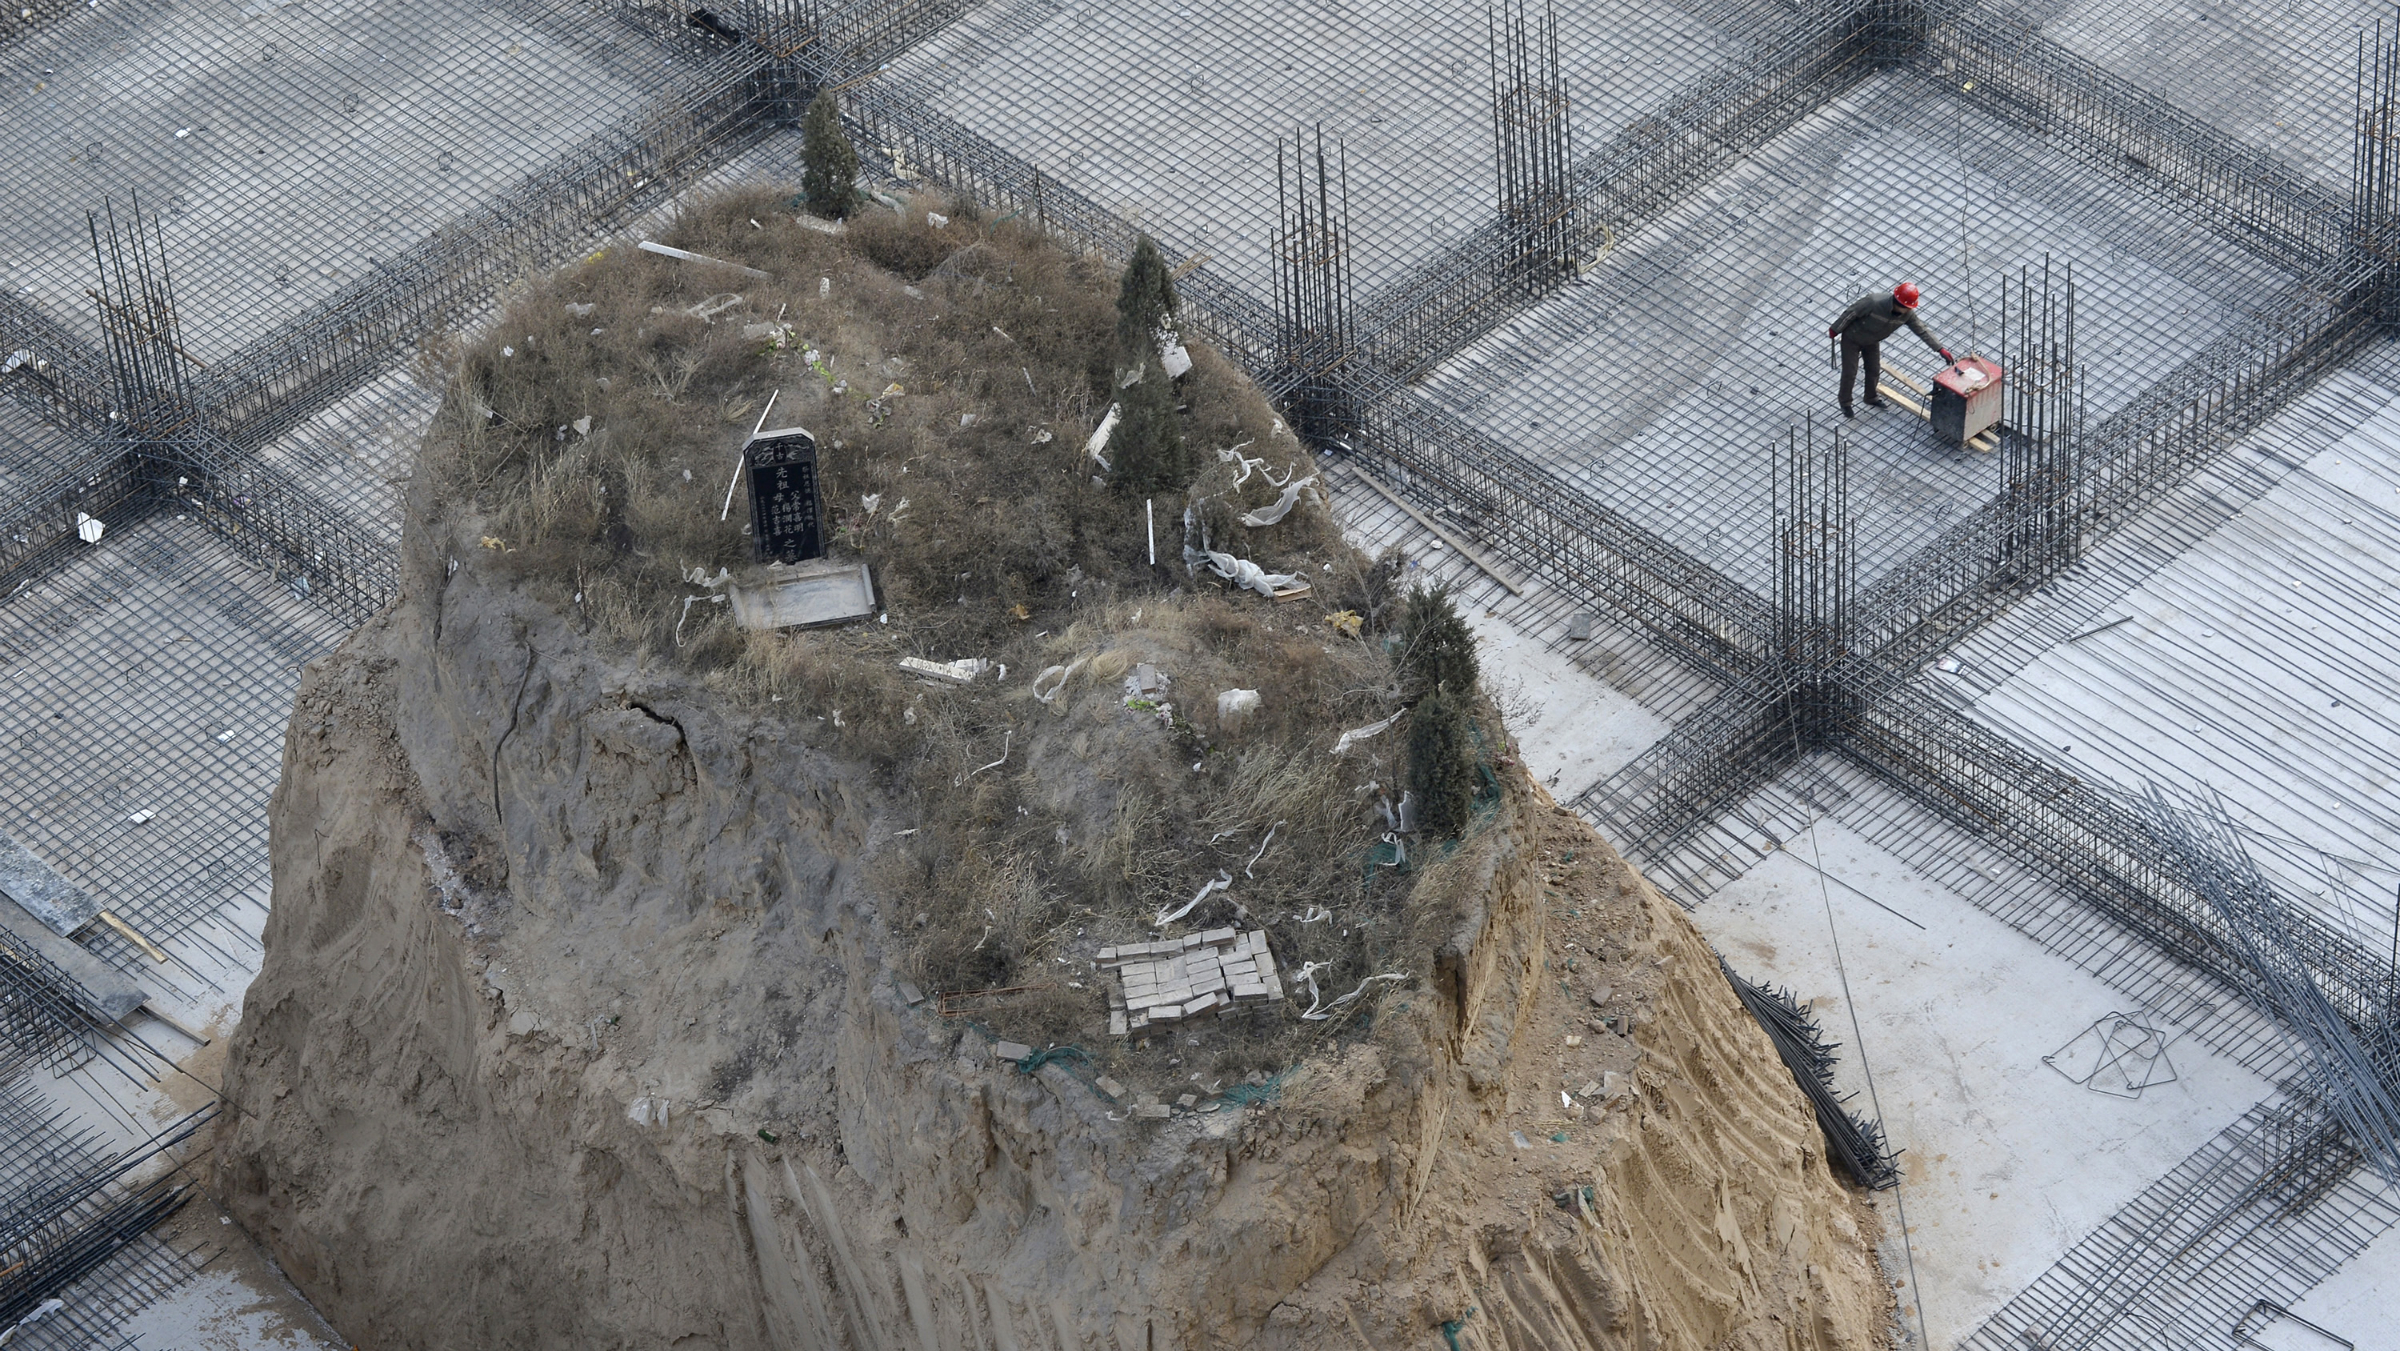 An ancestral tomb, measuring 10 metres high and a surface area of 10 square metres, is seen on the construction site of a building in Taiyuan, Shanxi province, December 6, 2012. The grave, which is believed to have existed since 2004, has not been moved as the family of the deceased is waiting for an auspicious date to do so and a reason from the developer of choosing this site, according to the owner of tomb. The building is scheduled to be completed by April 2013. REUTERS/Stringer